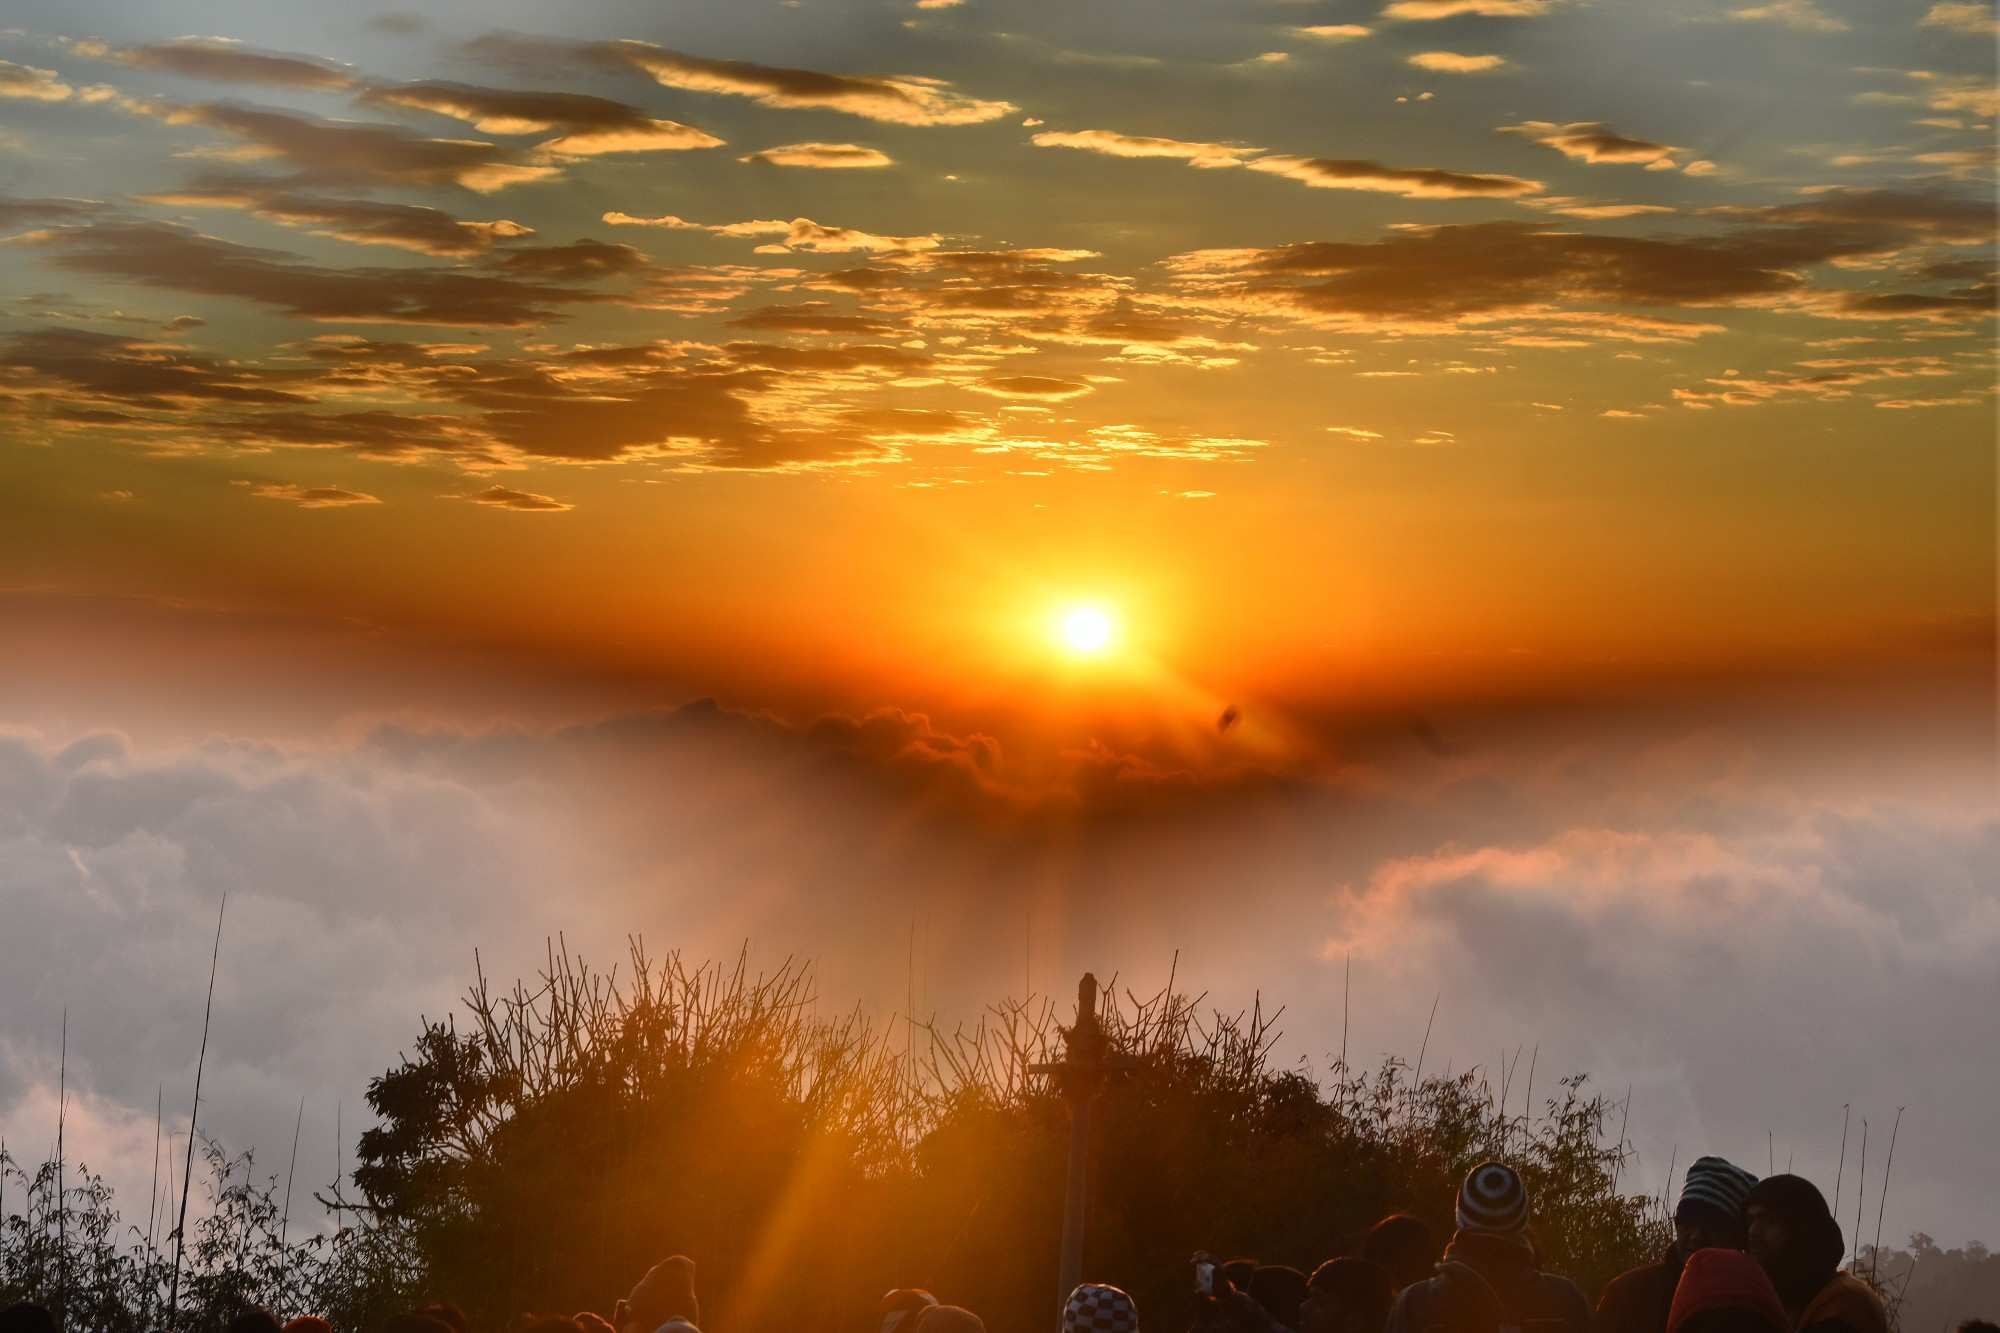 A sunrise over clouds and tree tops.